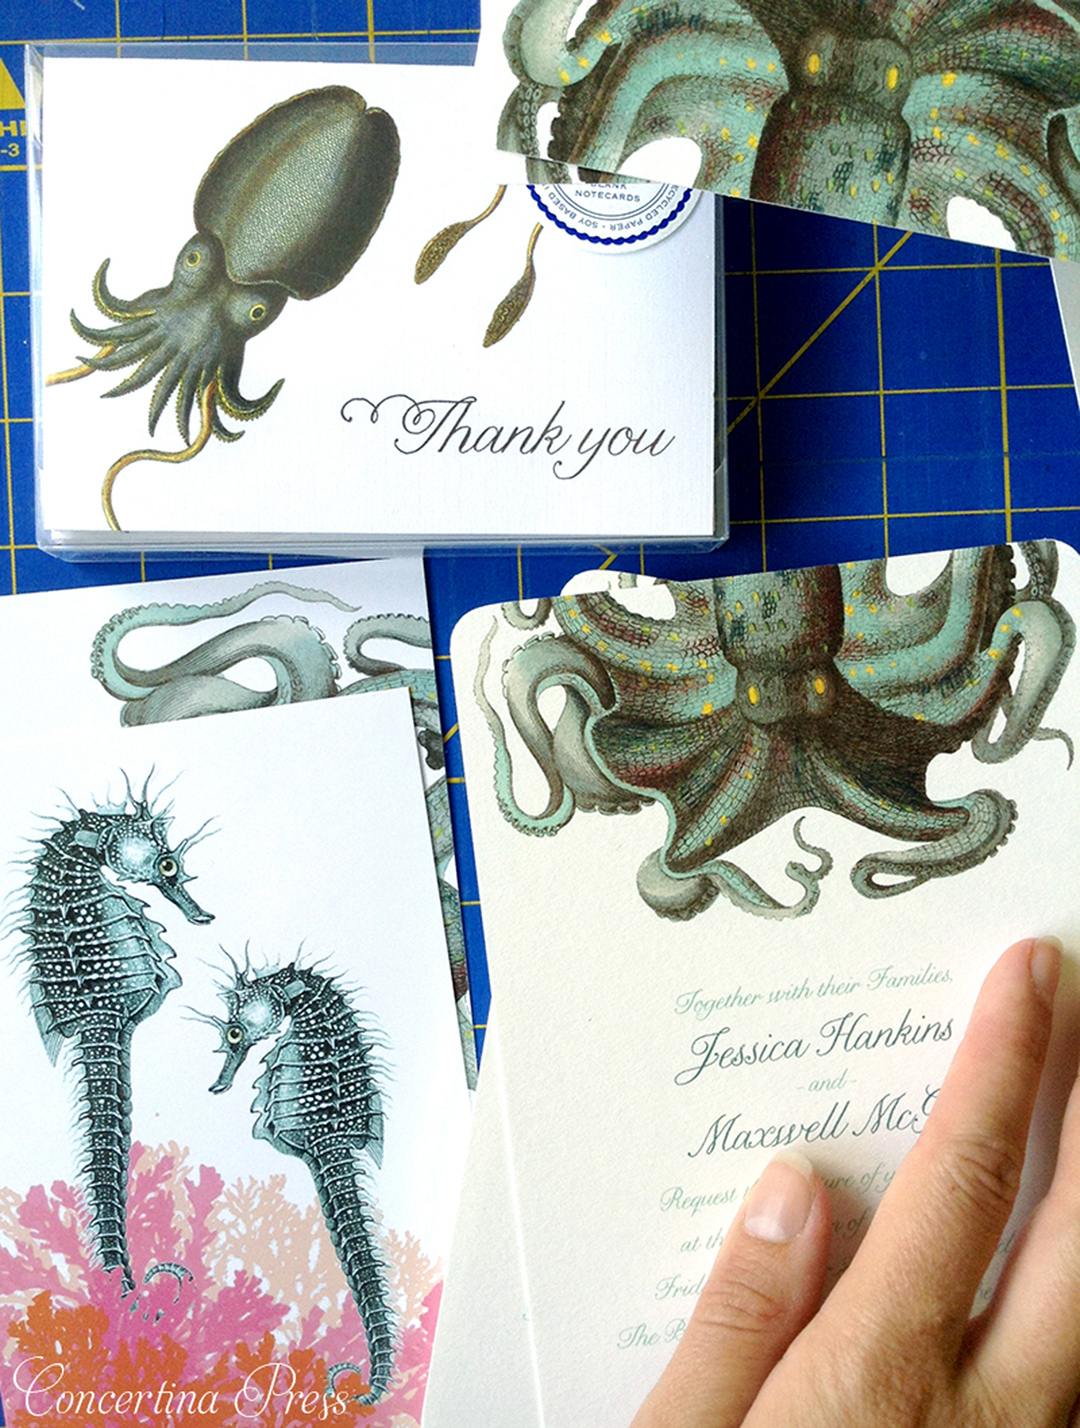 Octopus Wedding Invitation Set - wedding ceremony and reception in an aquarium